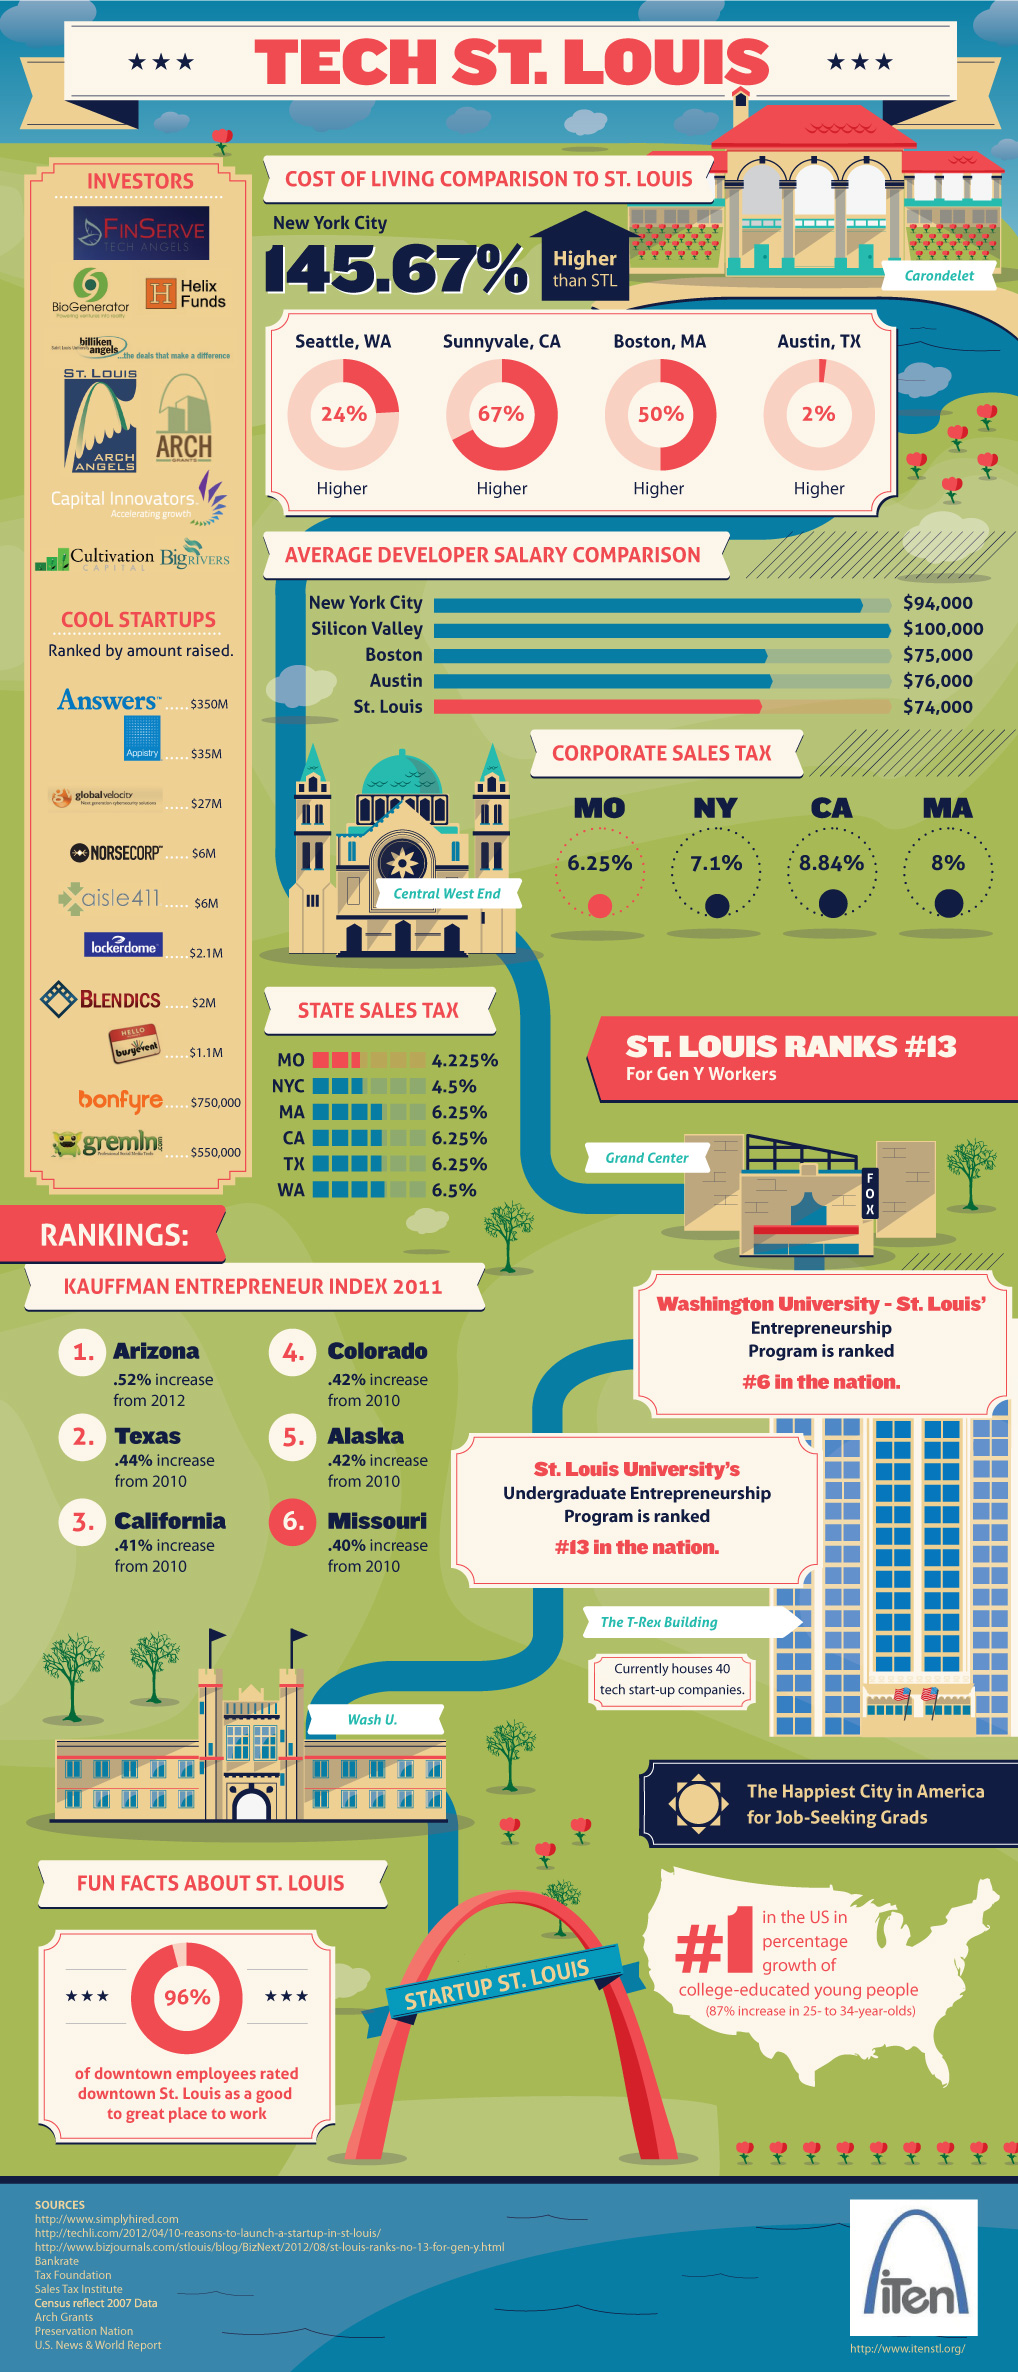 iten-infographic-for-st-louis_508acaf86efa9